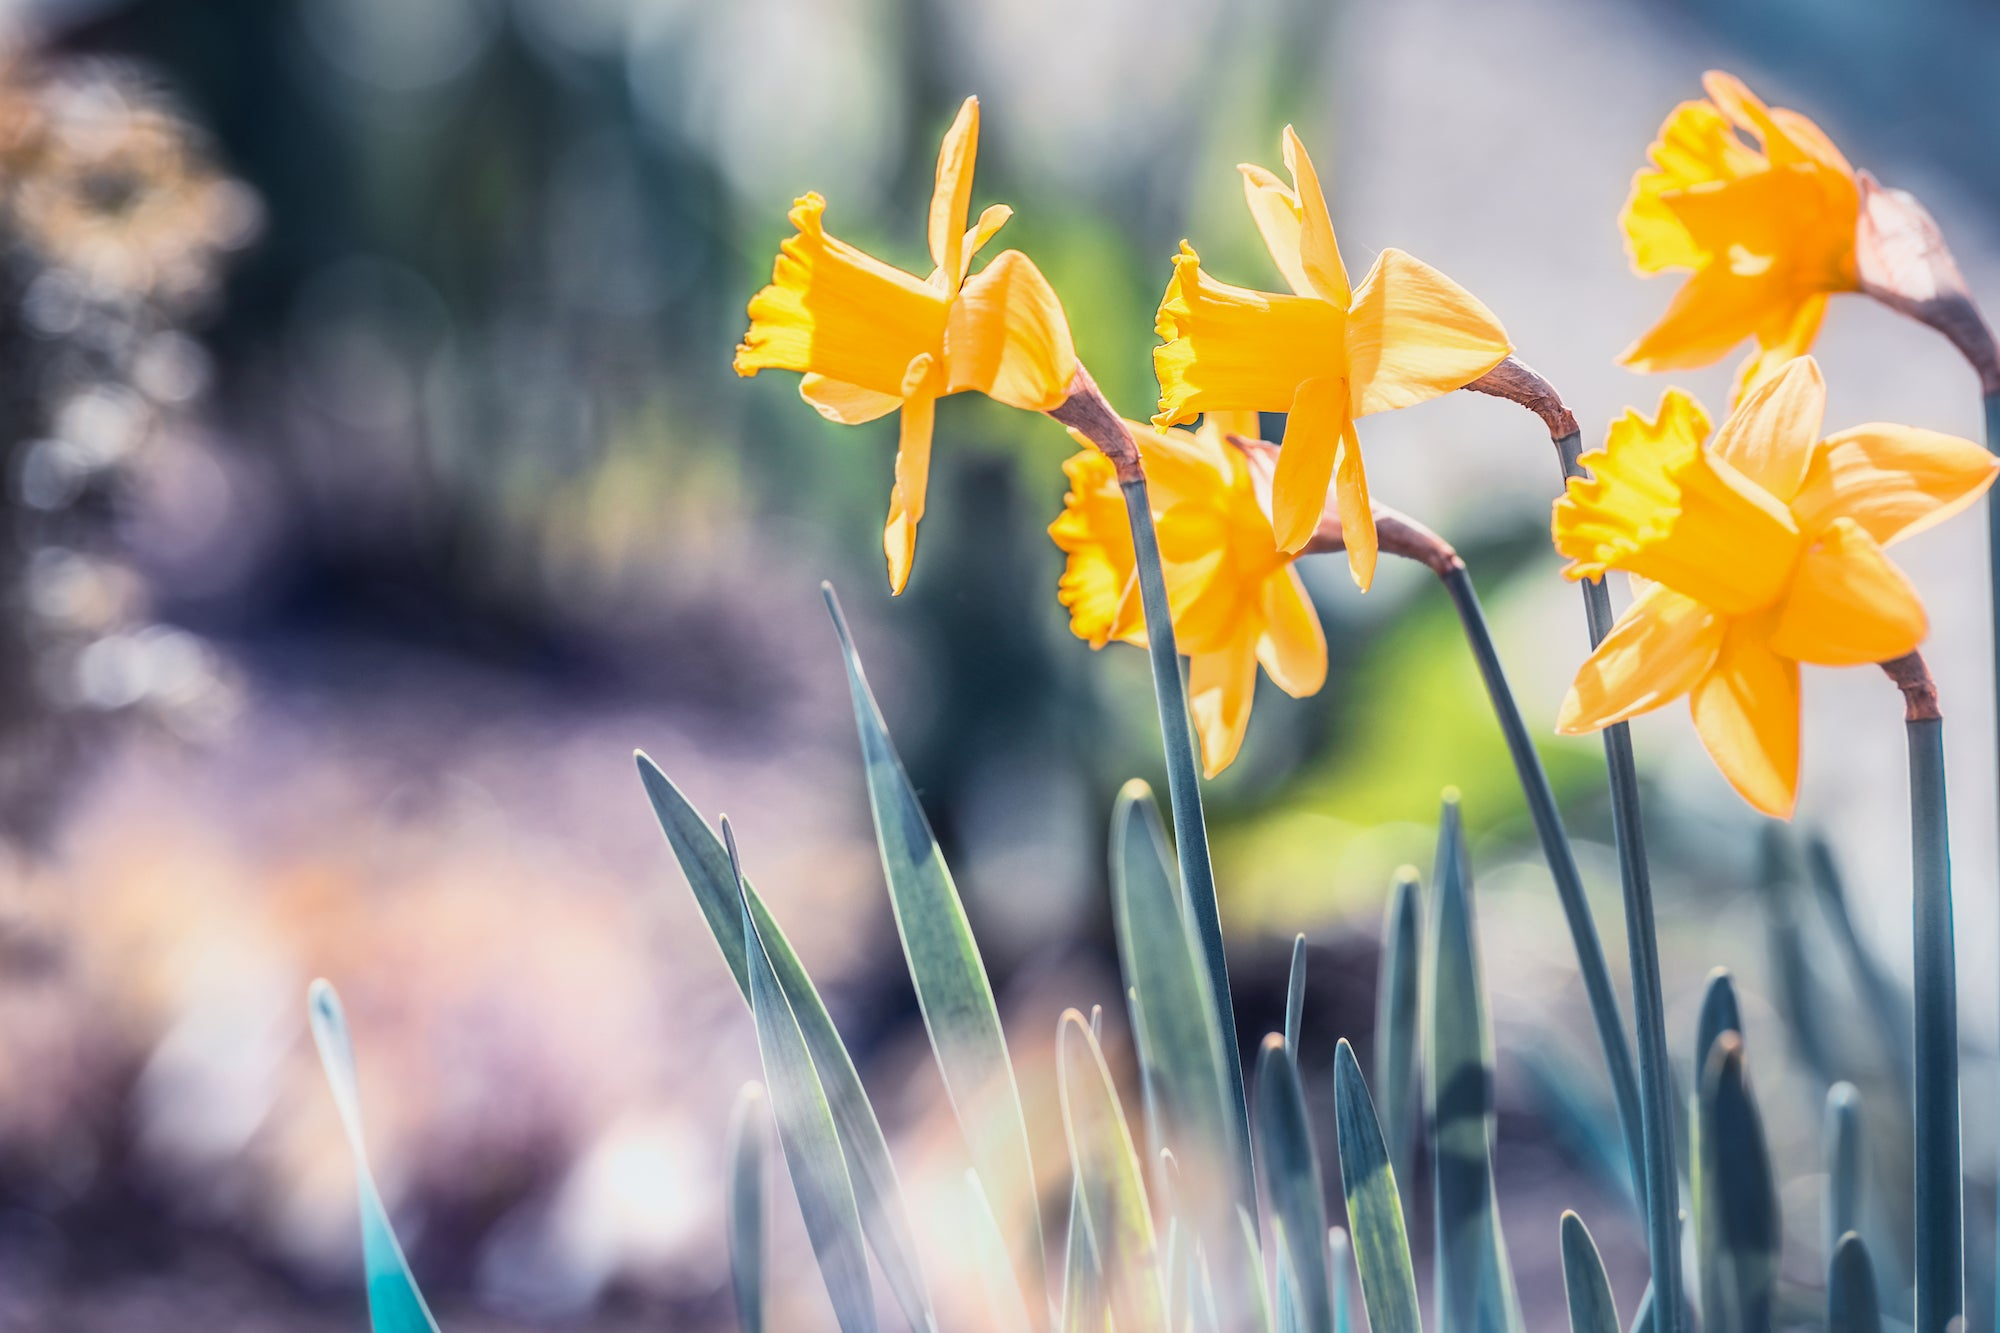 Daffodils Are Easy To Plant!